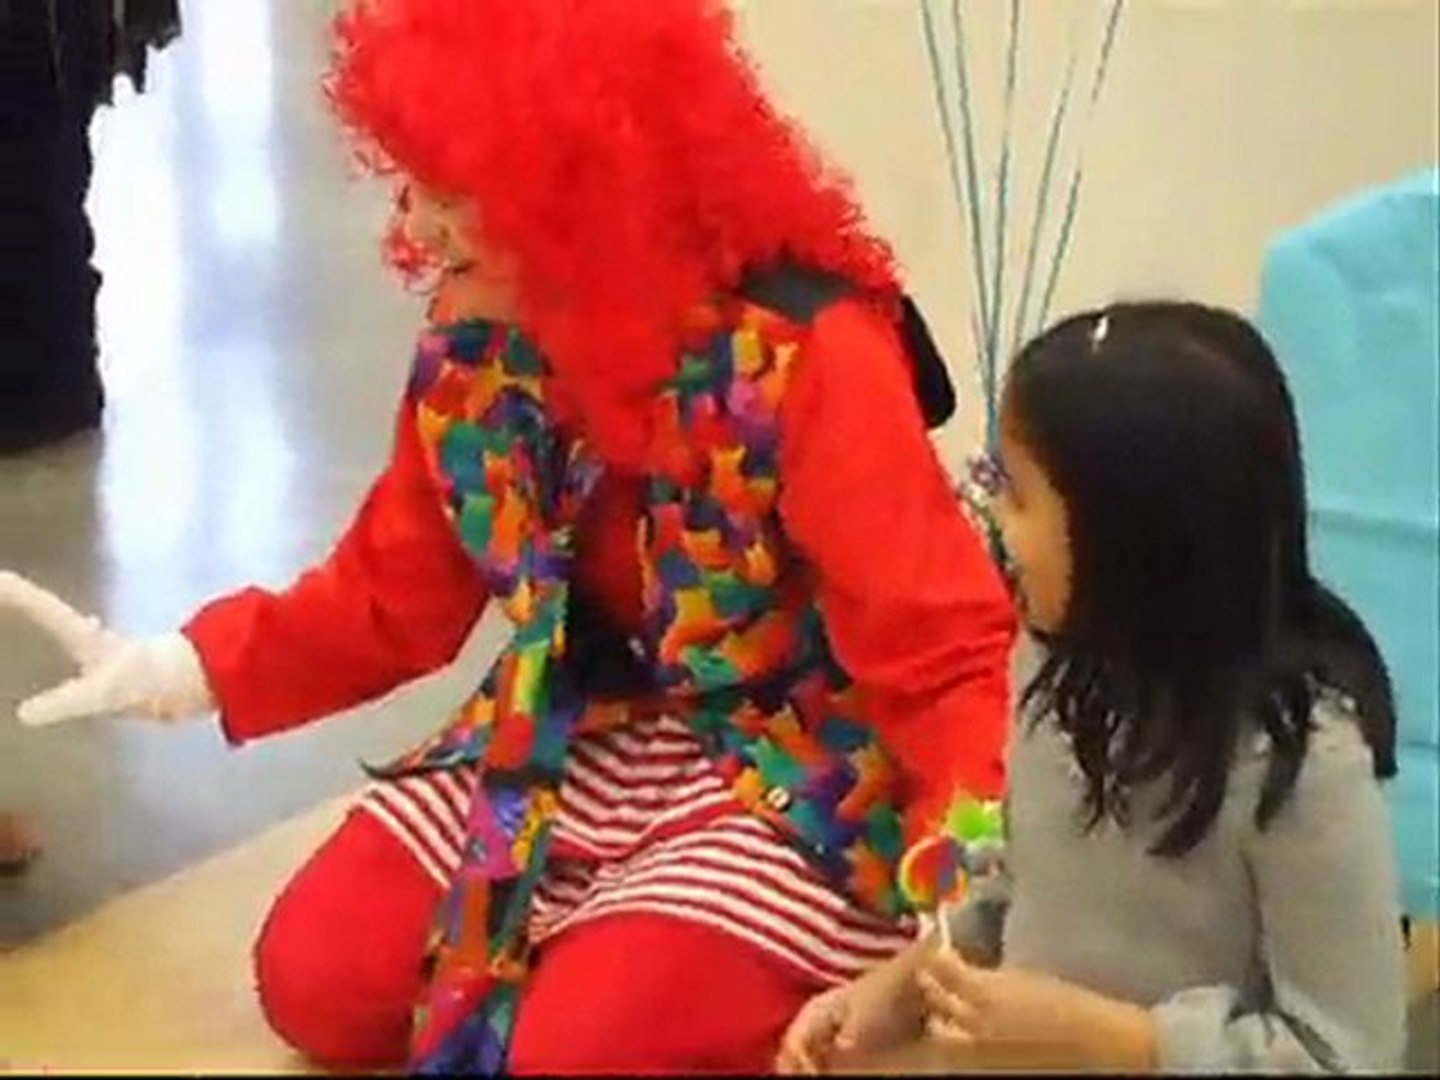 ROBOT CLOWN ENTERTAINMENT FOR CHALLENGED KIDS - VANCOUVER BC